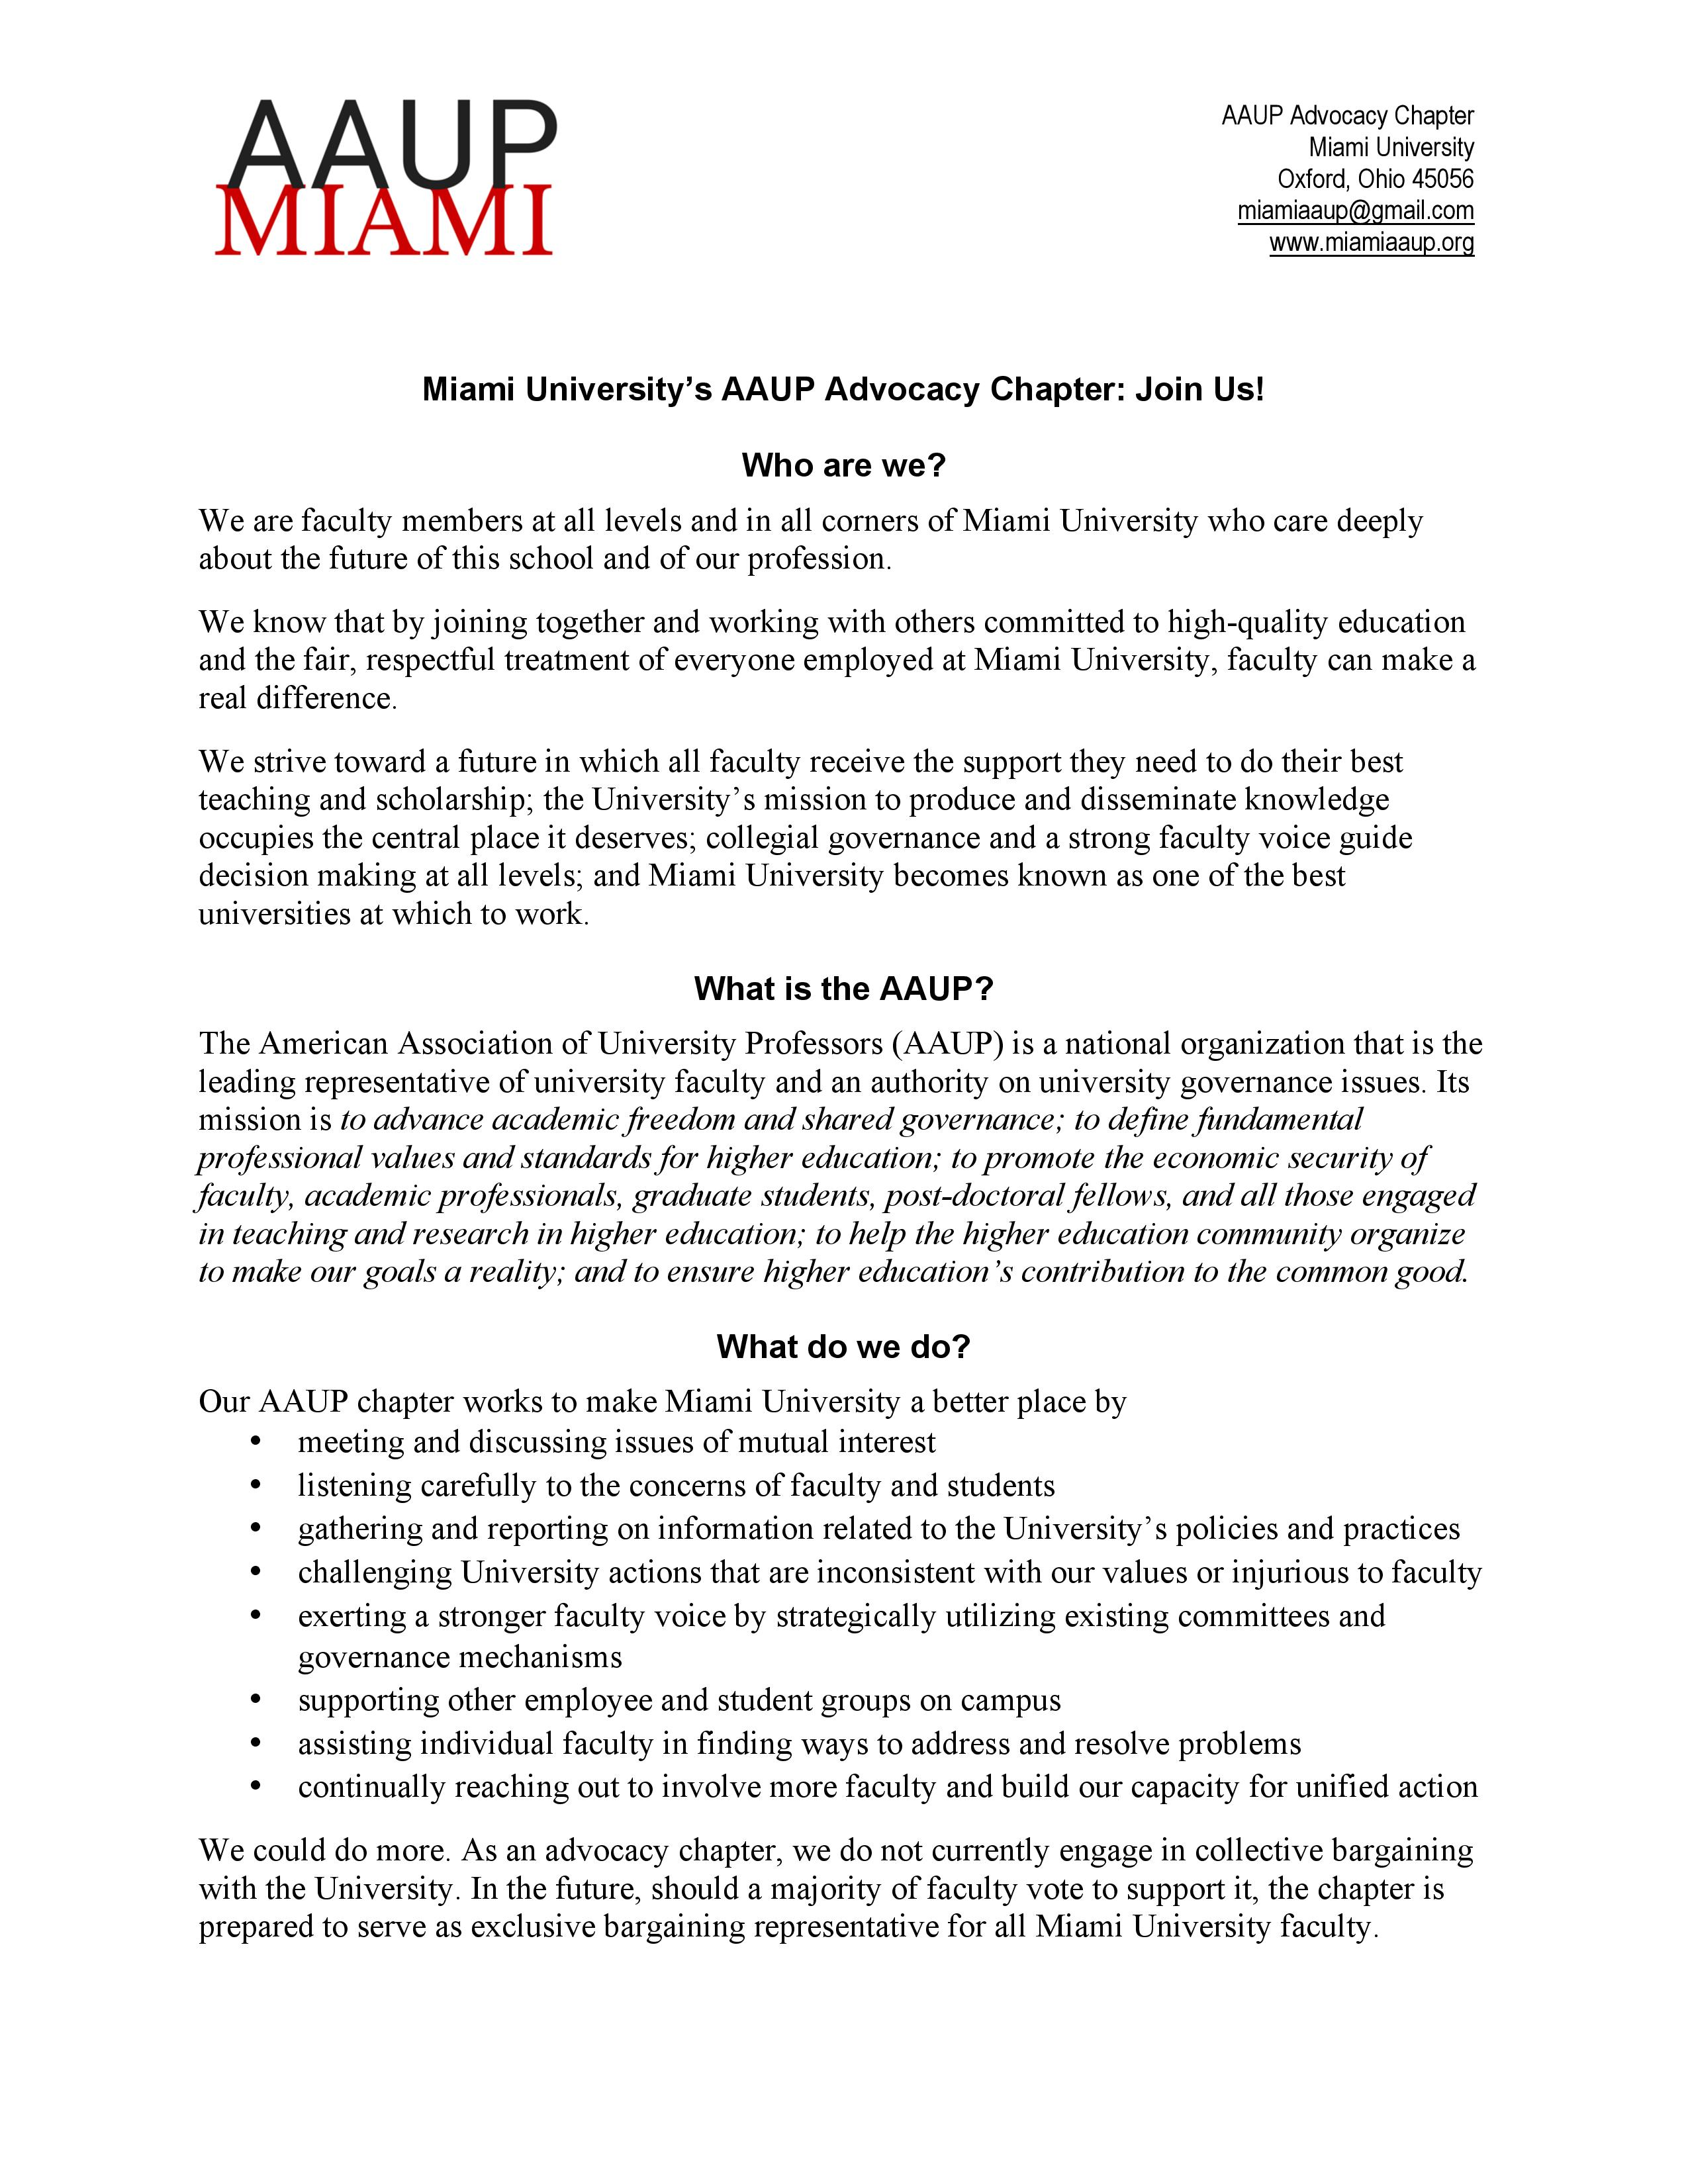 educational mission – Miami University AAUP Advocacy Chapter